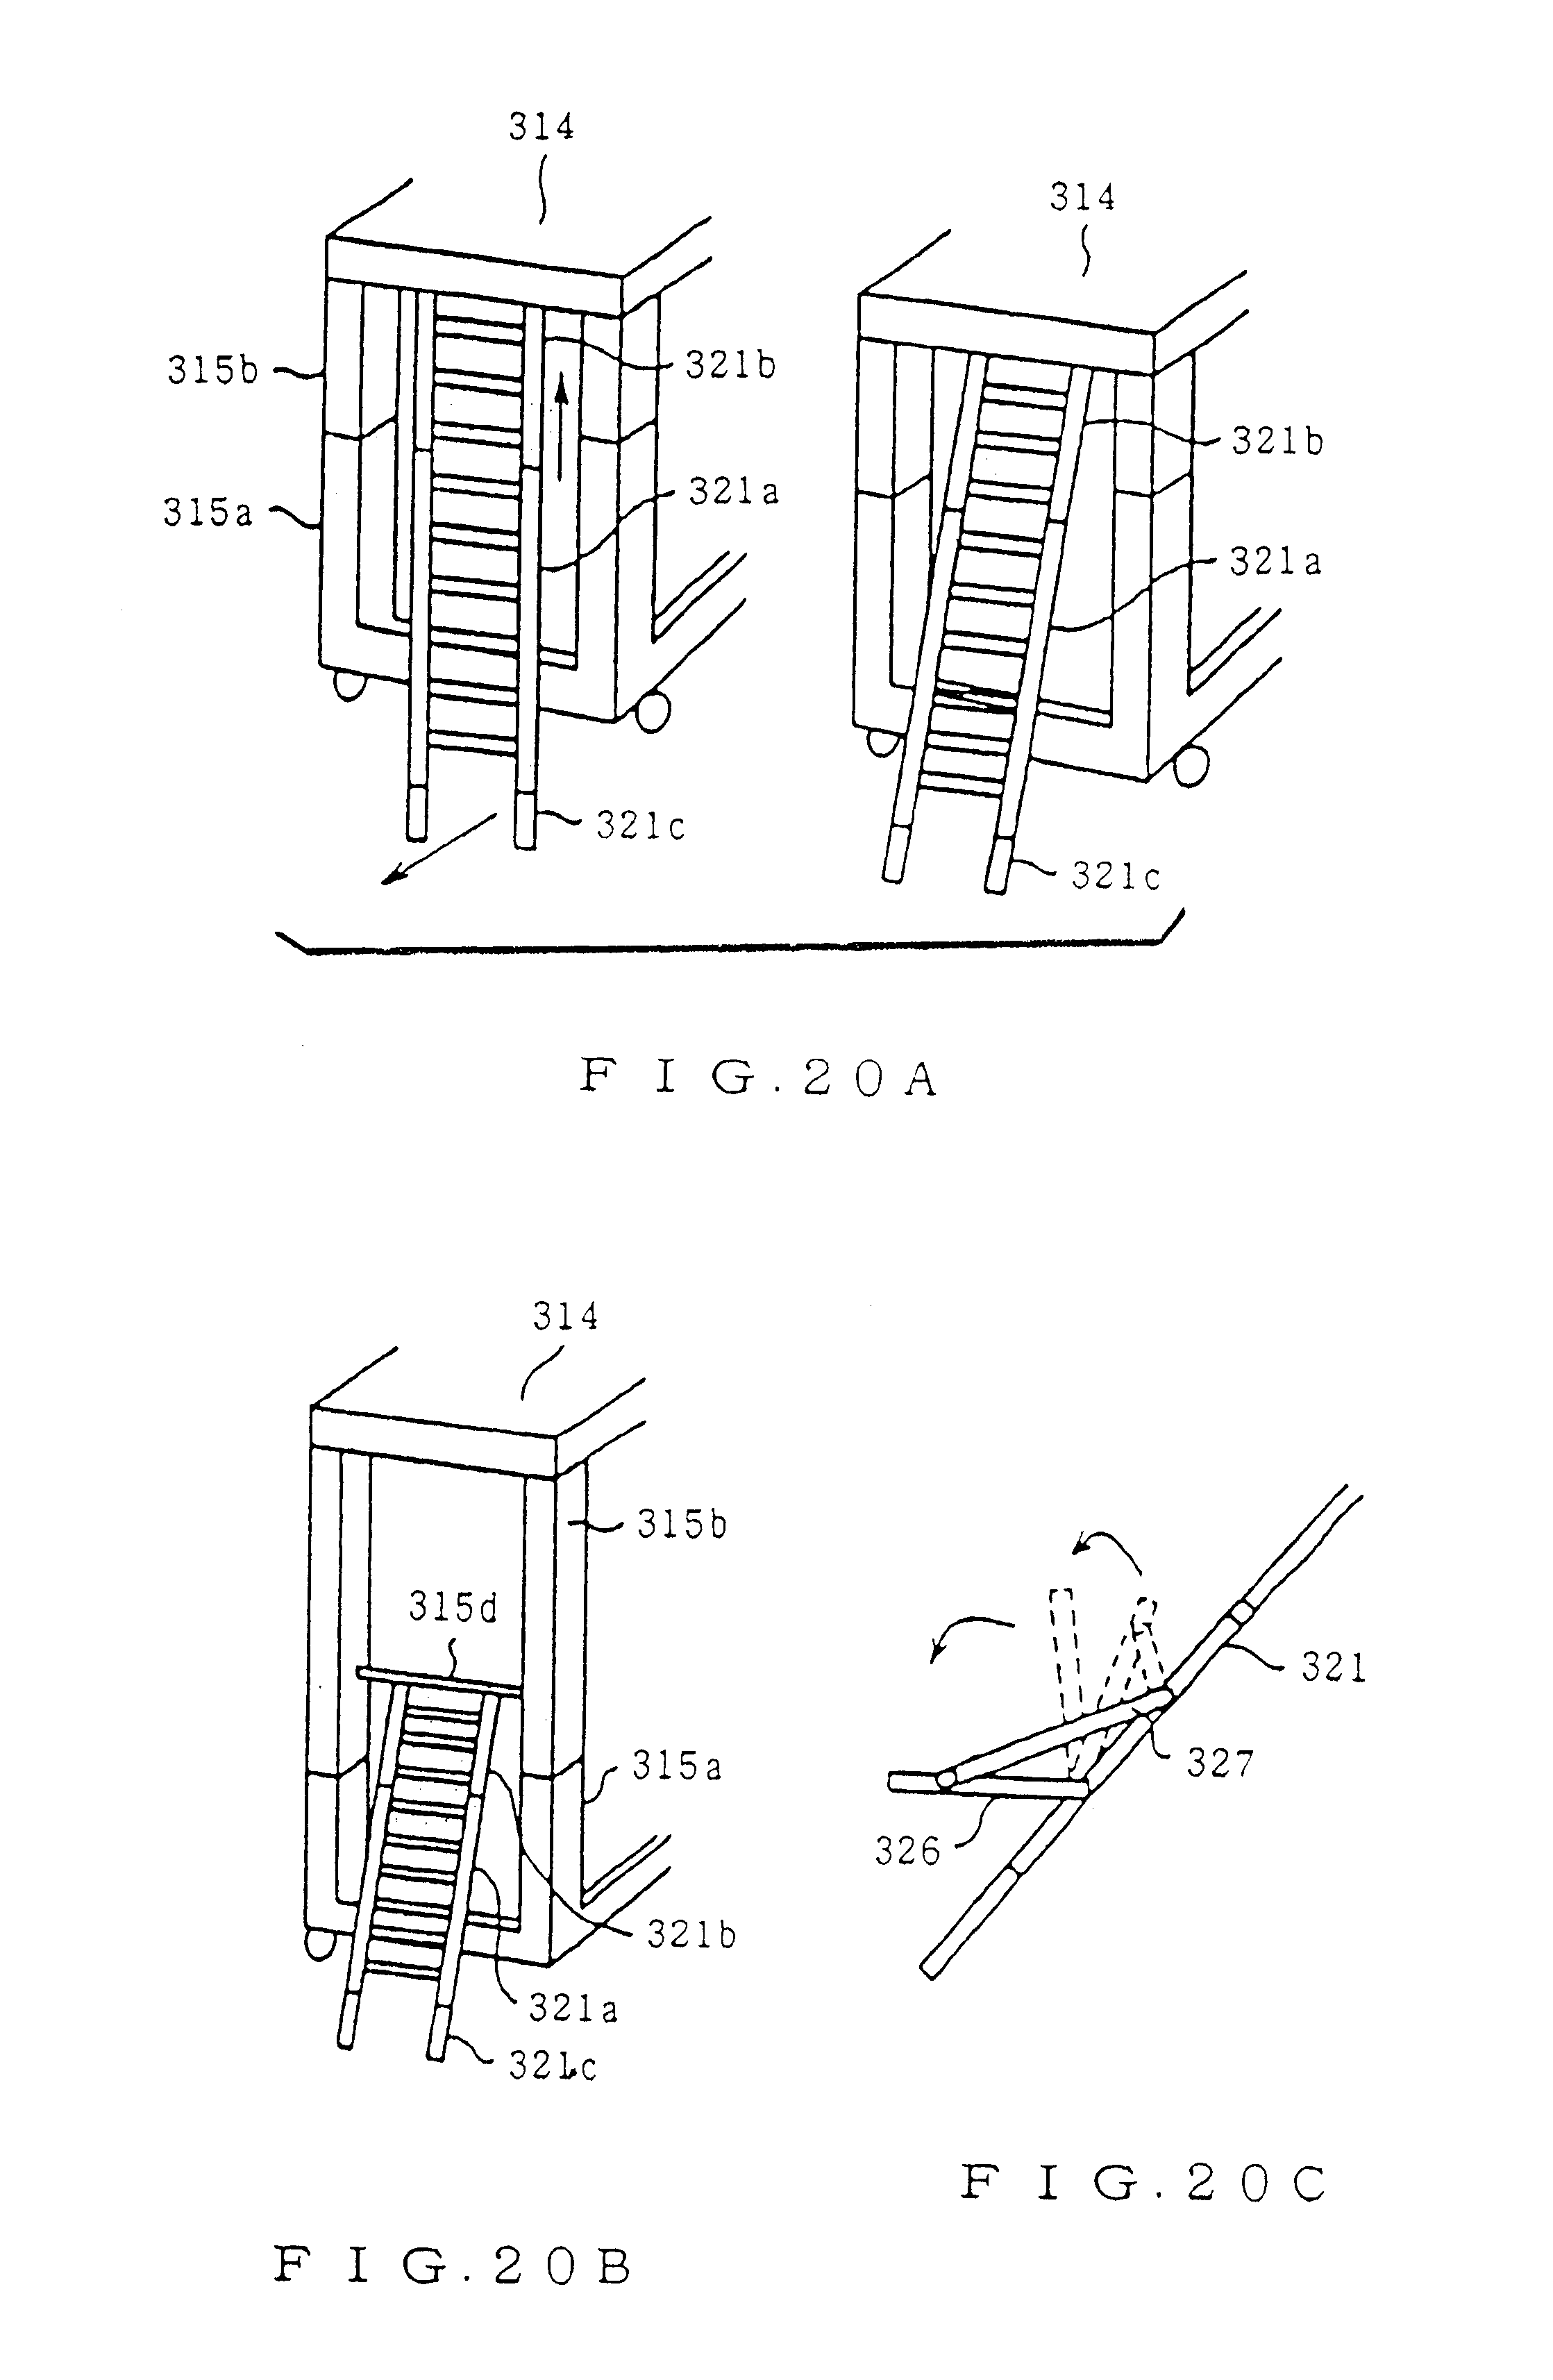 US6651820B2 - System for sorting commercial articles and